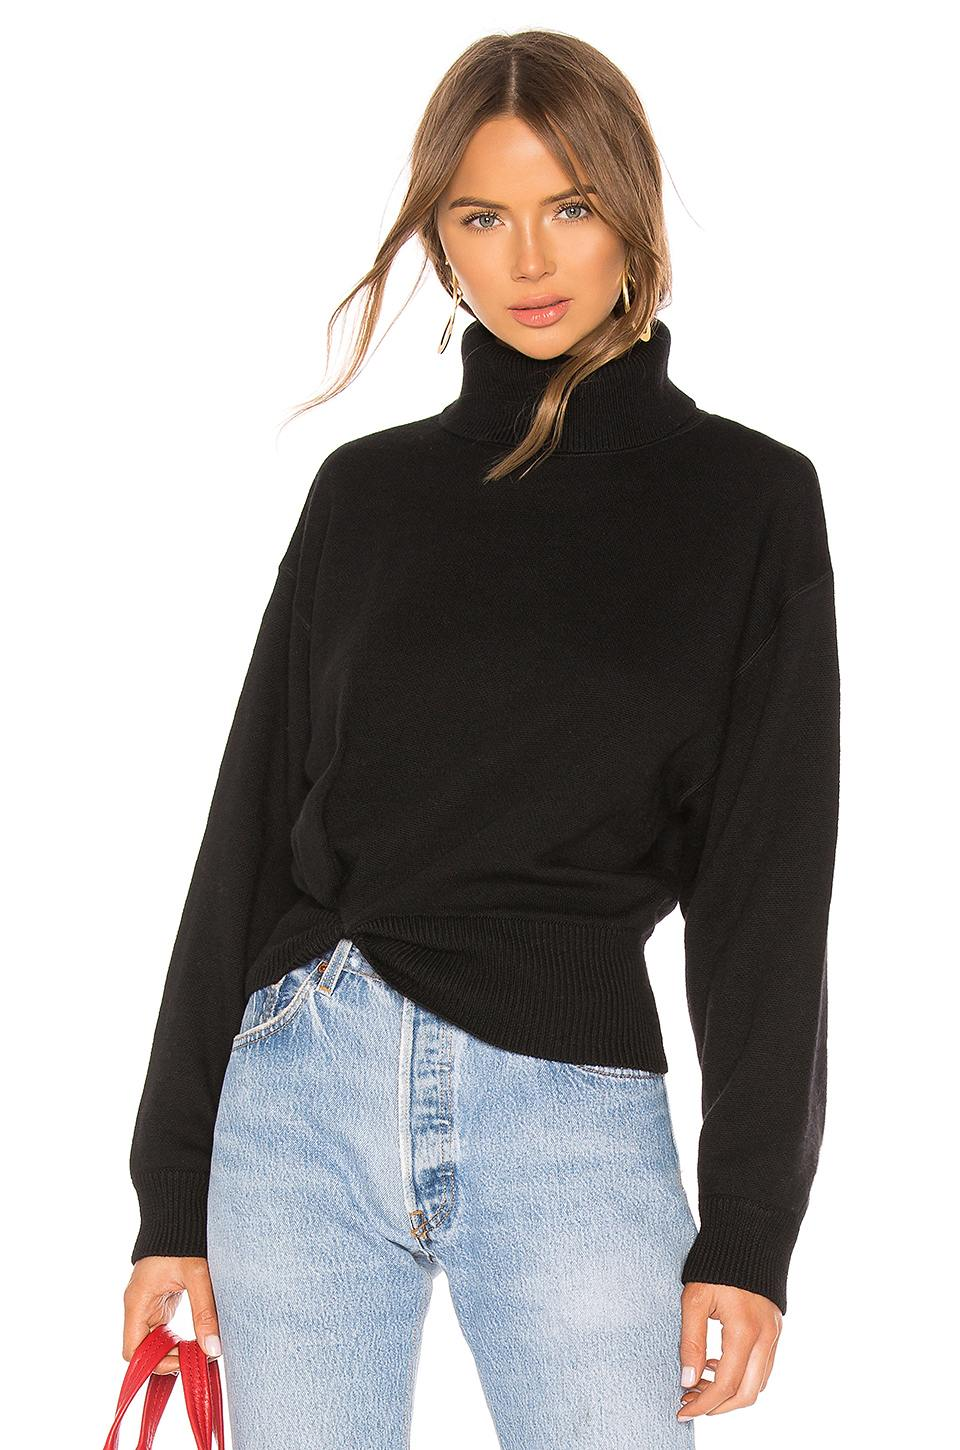 Twist Detail Turtleneck Sweater by Alexander Wang, available on revolve.com for $395 Kendall Jenner Top Exact Product